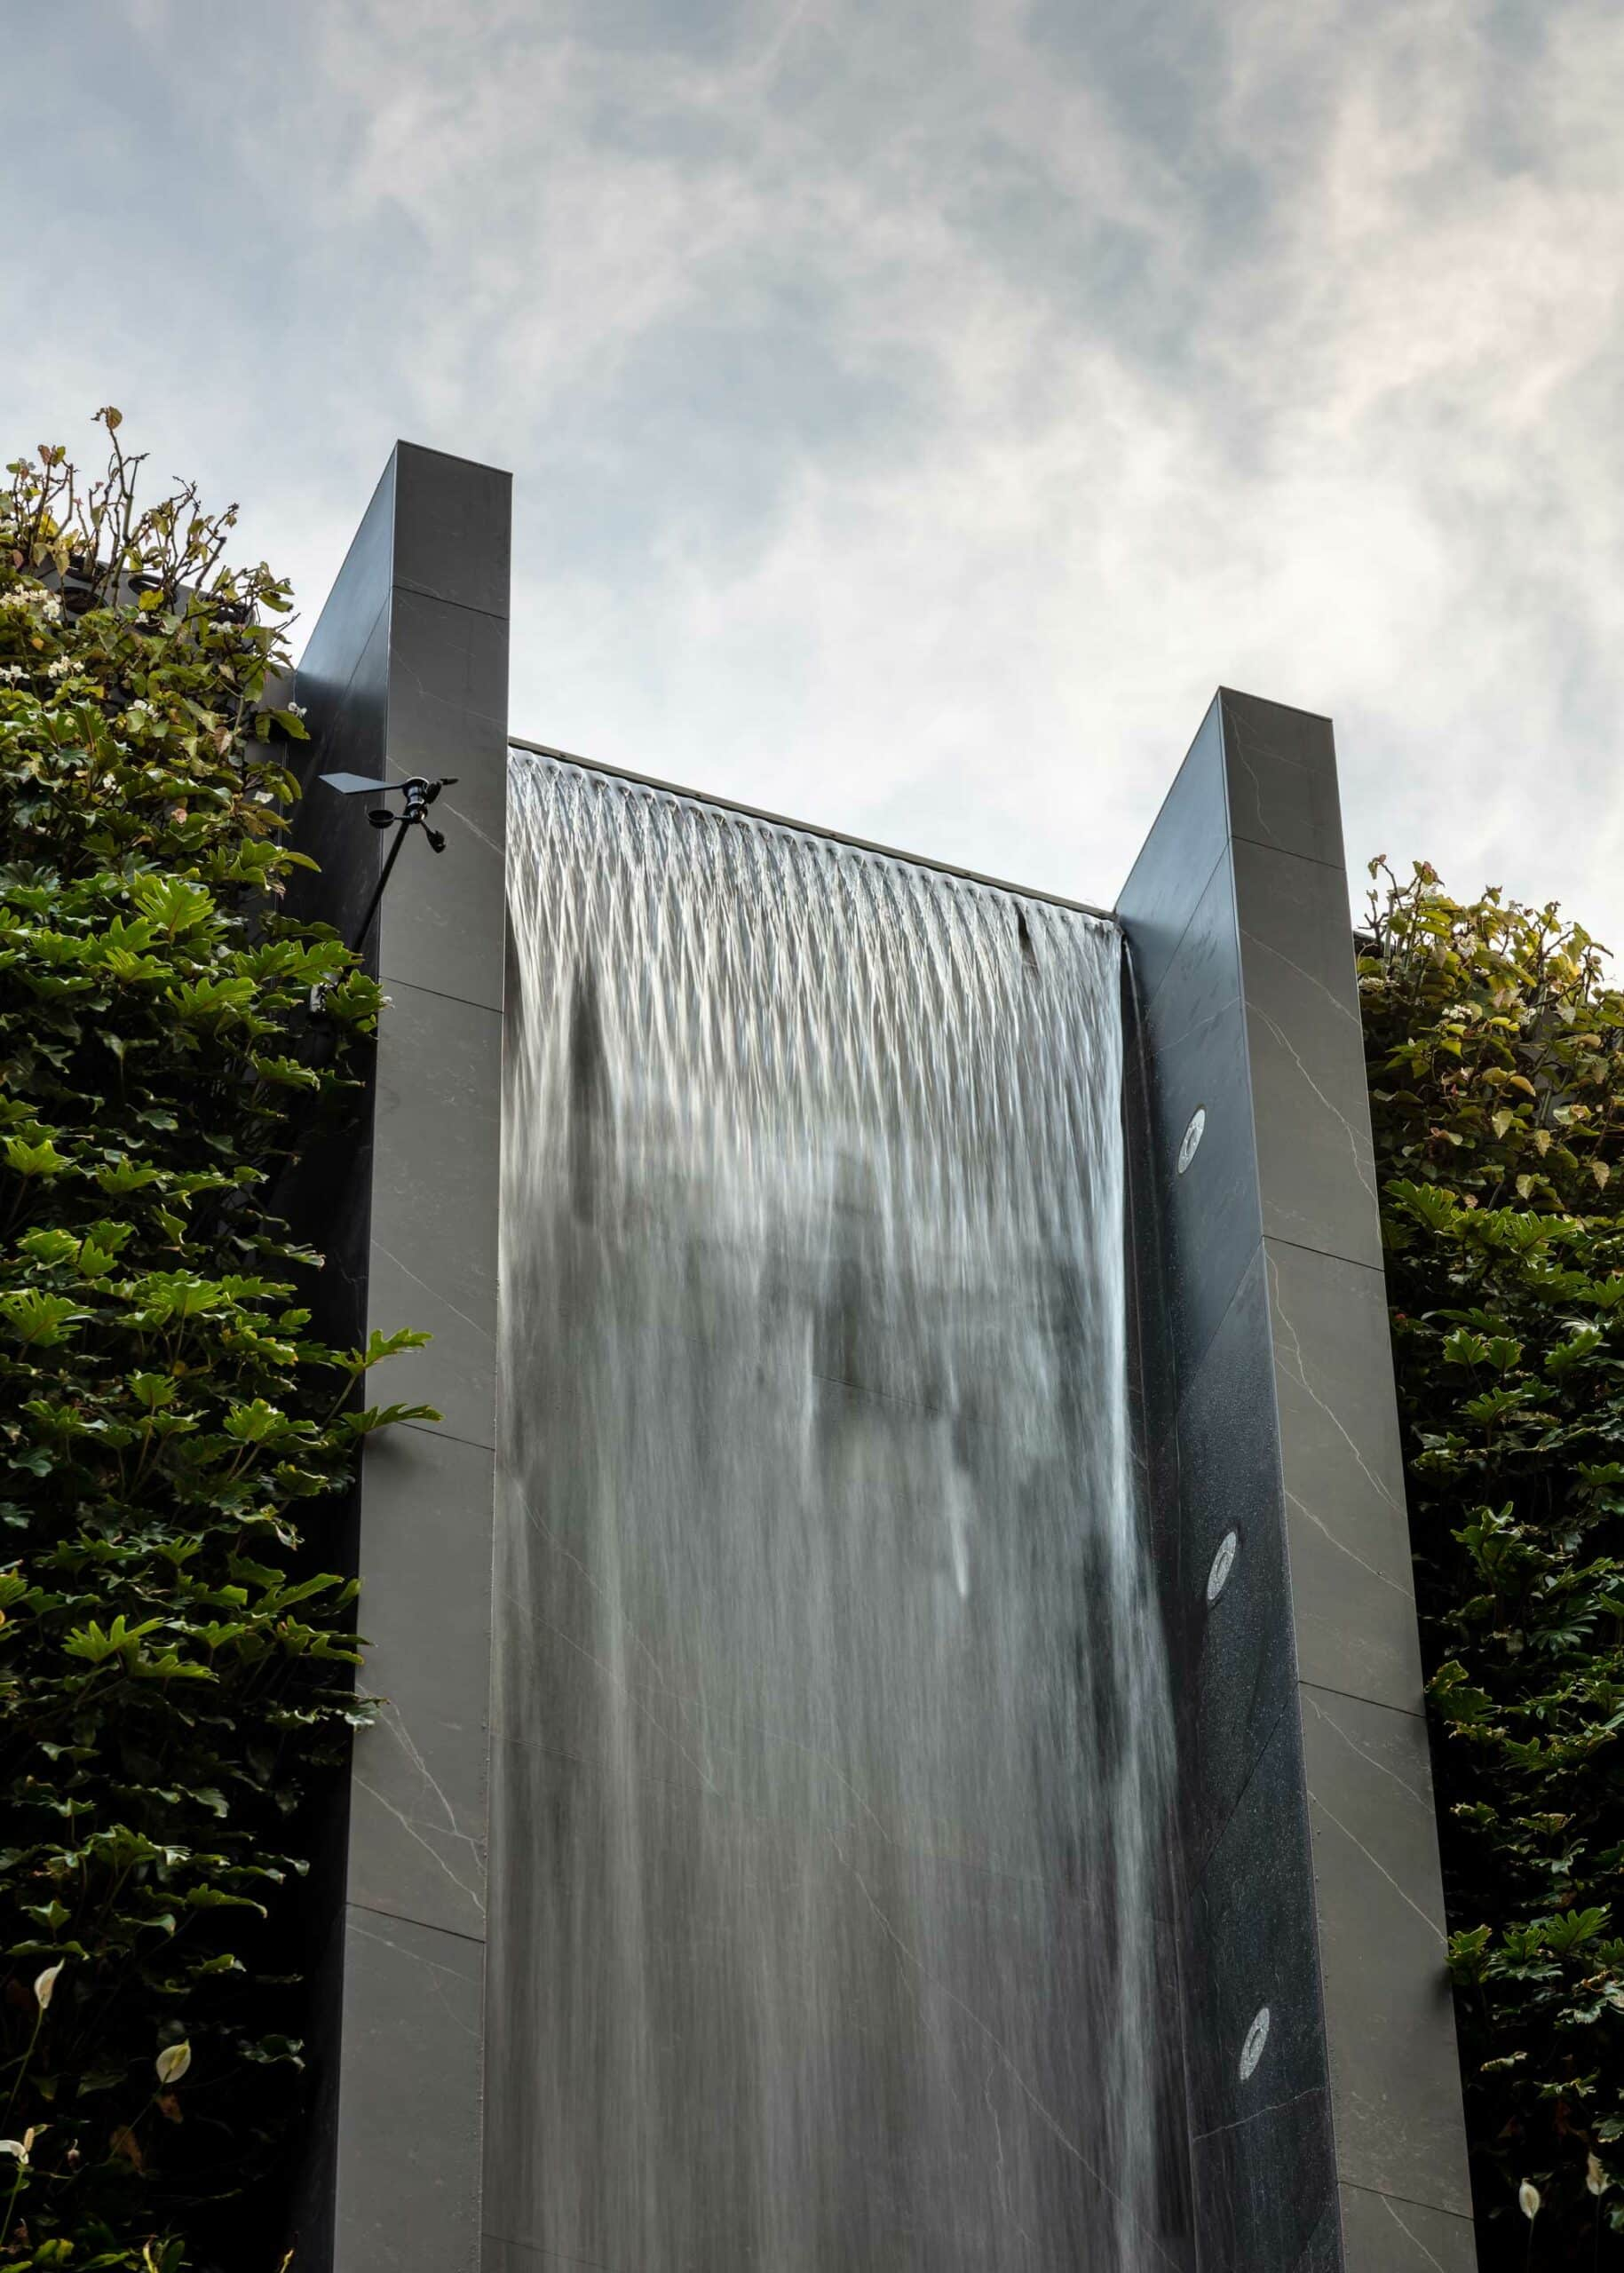 Urban waterfall  - Waterfall Dekton 5 scaled 53